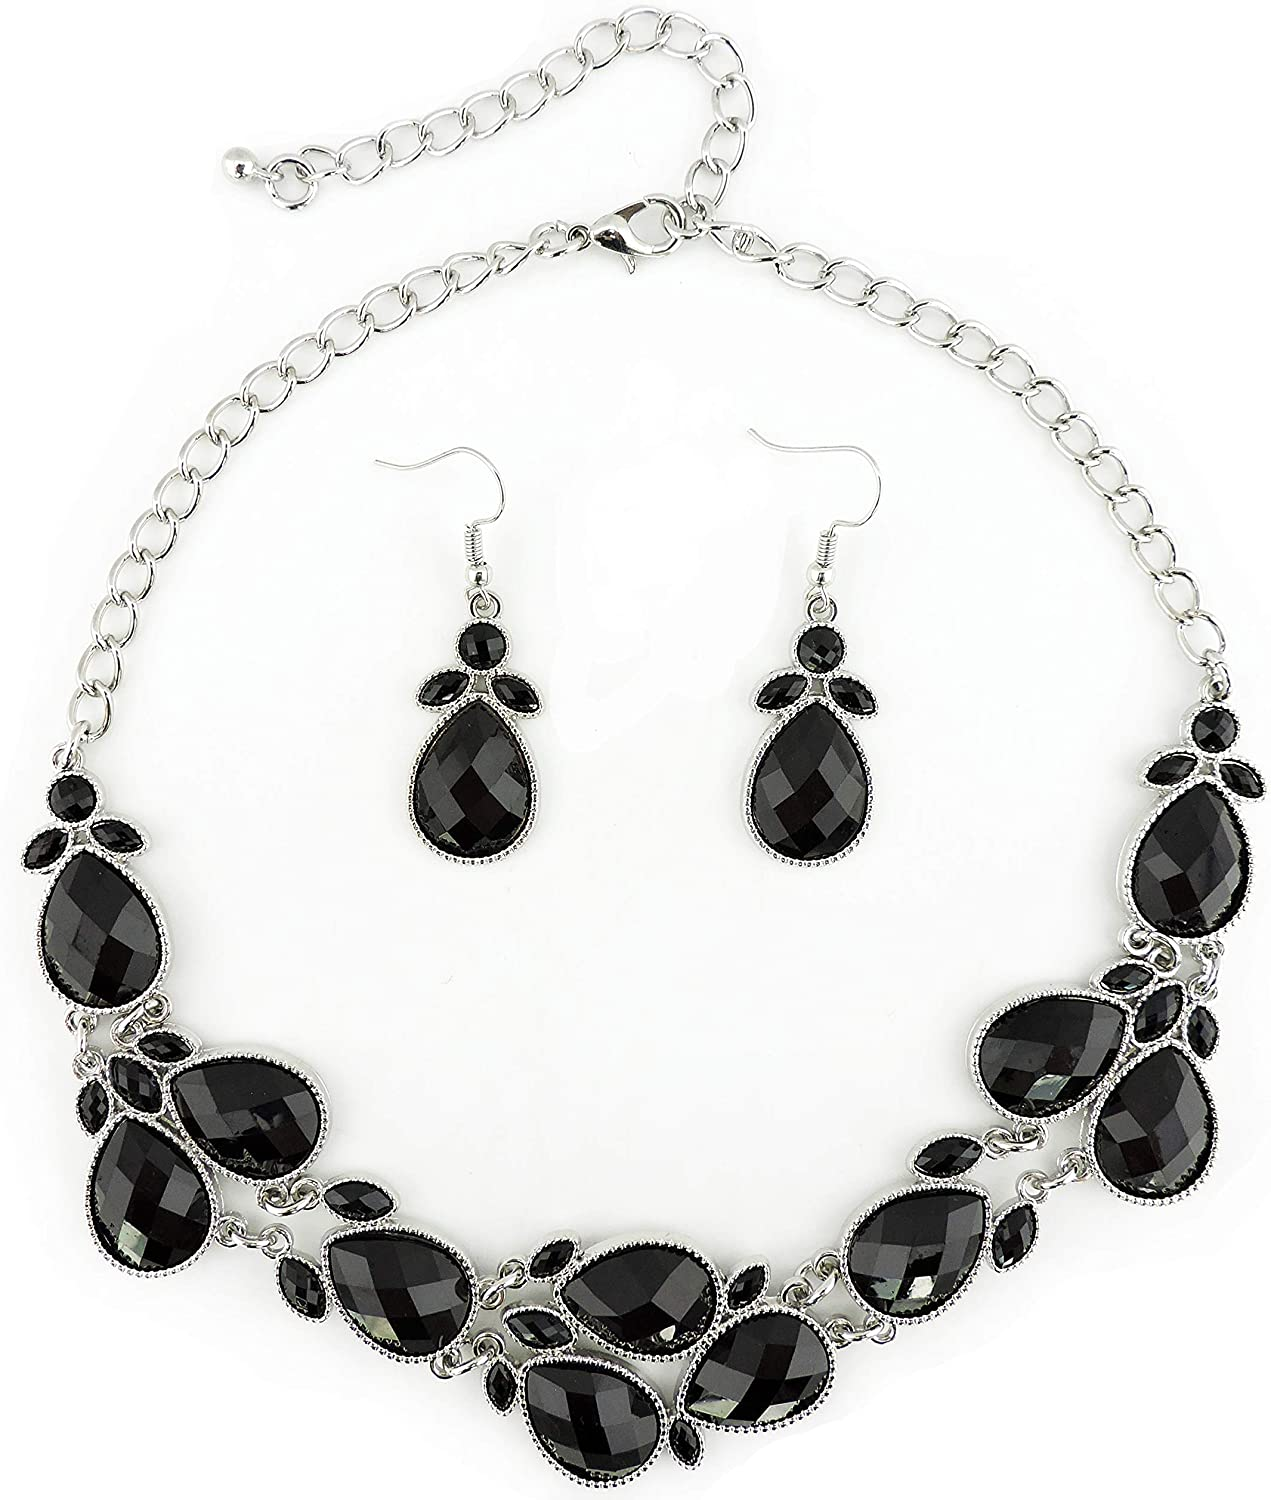 Firstmeet Shiny Resin Drill Collar Necklace with Earrings